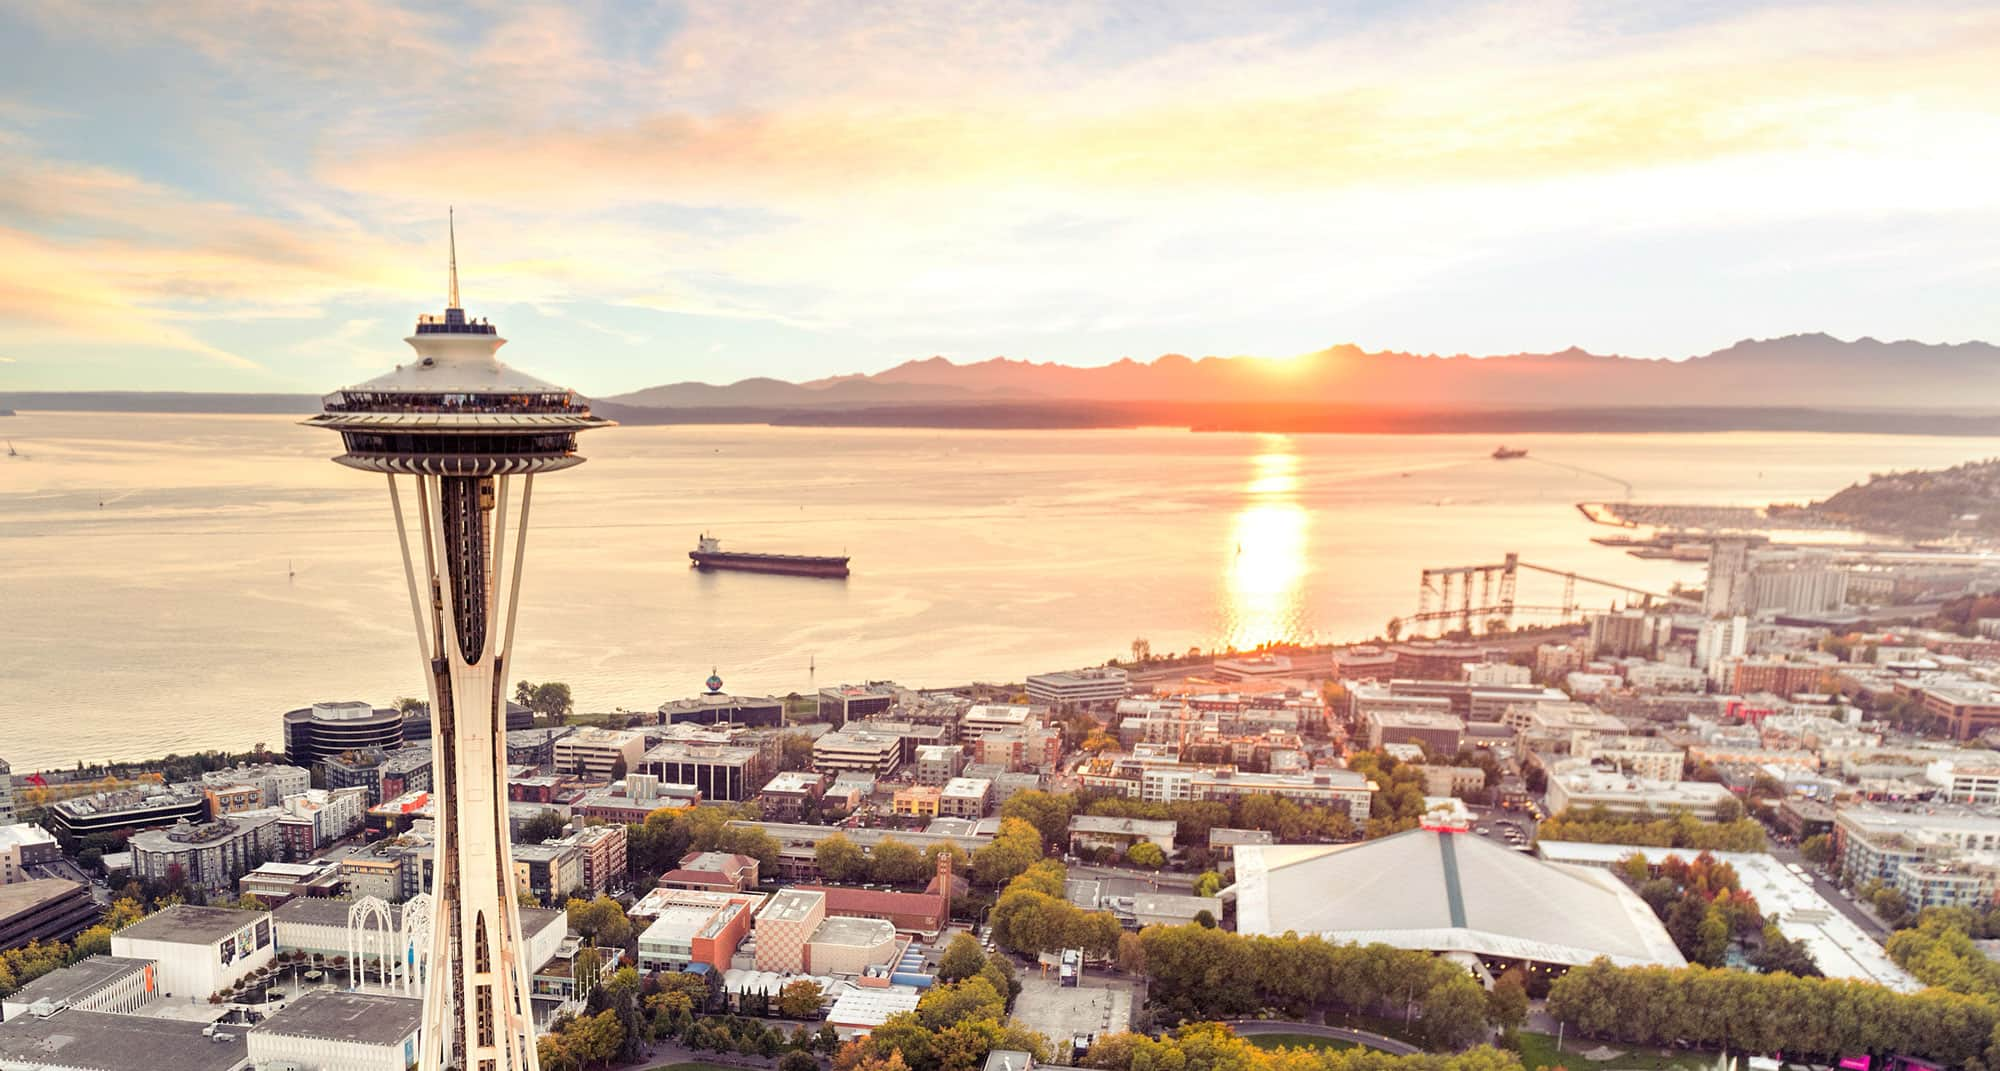 Charleston SC to Seattle or Vice Versa $195 RT Nonstop Airfares on Alaska Airlines Saver Fares (Travel August - December 2020)